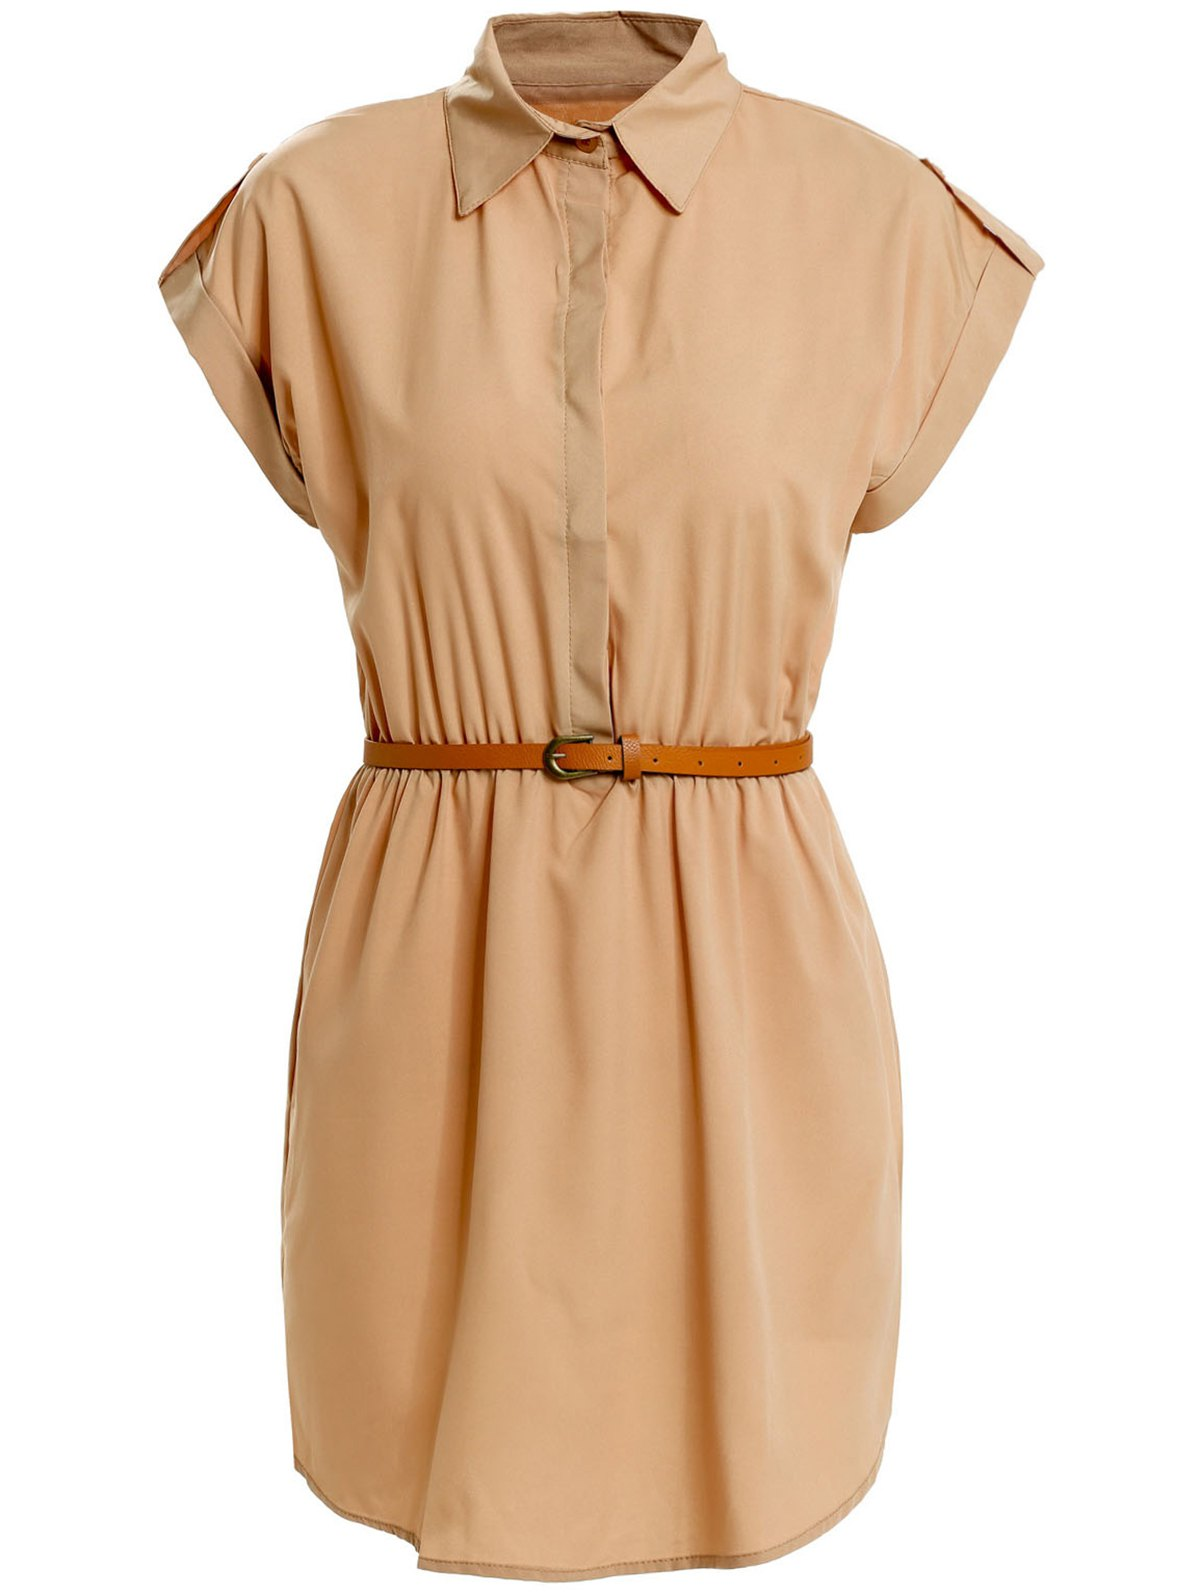 Turn Down Collar Short Sleeve Eqaulets Embellished Packet Buttock Dress - KHAKI L